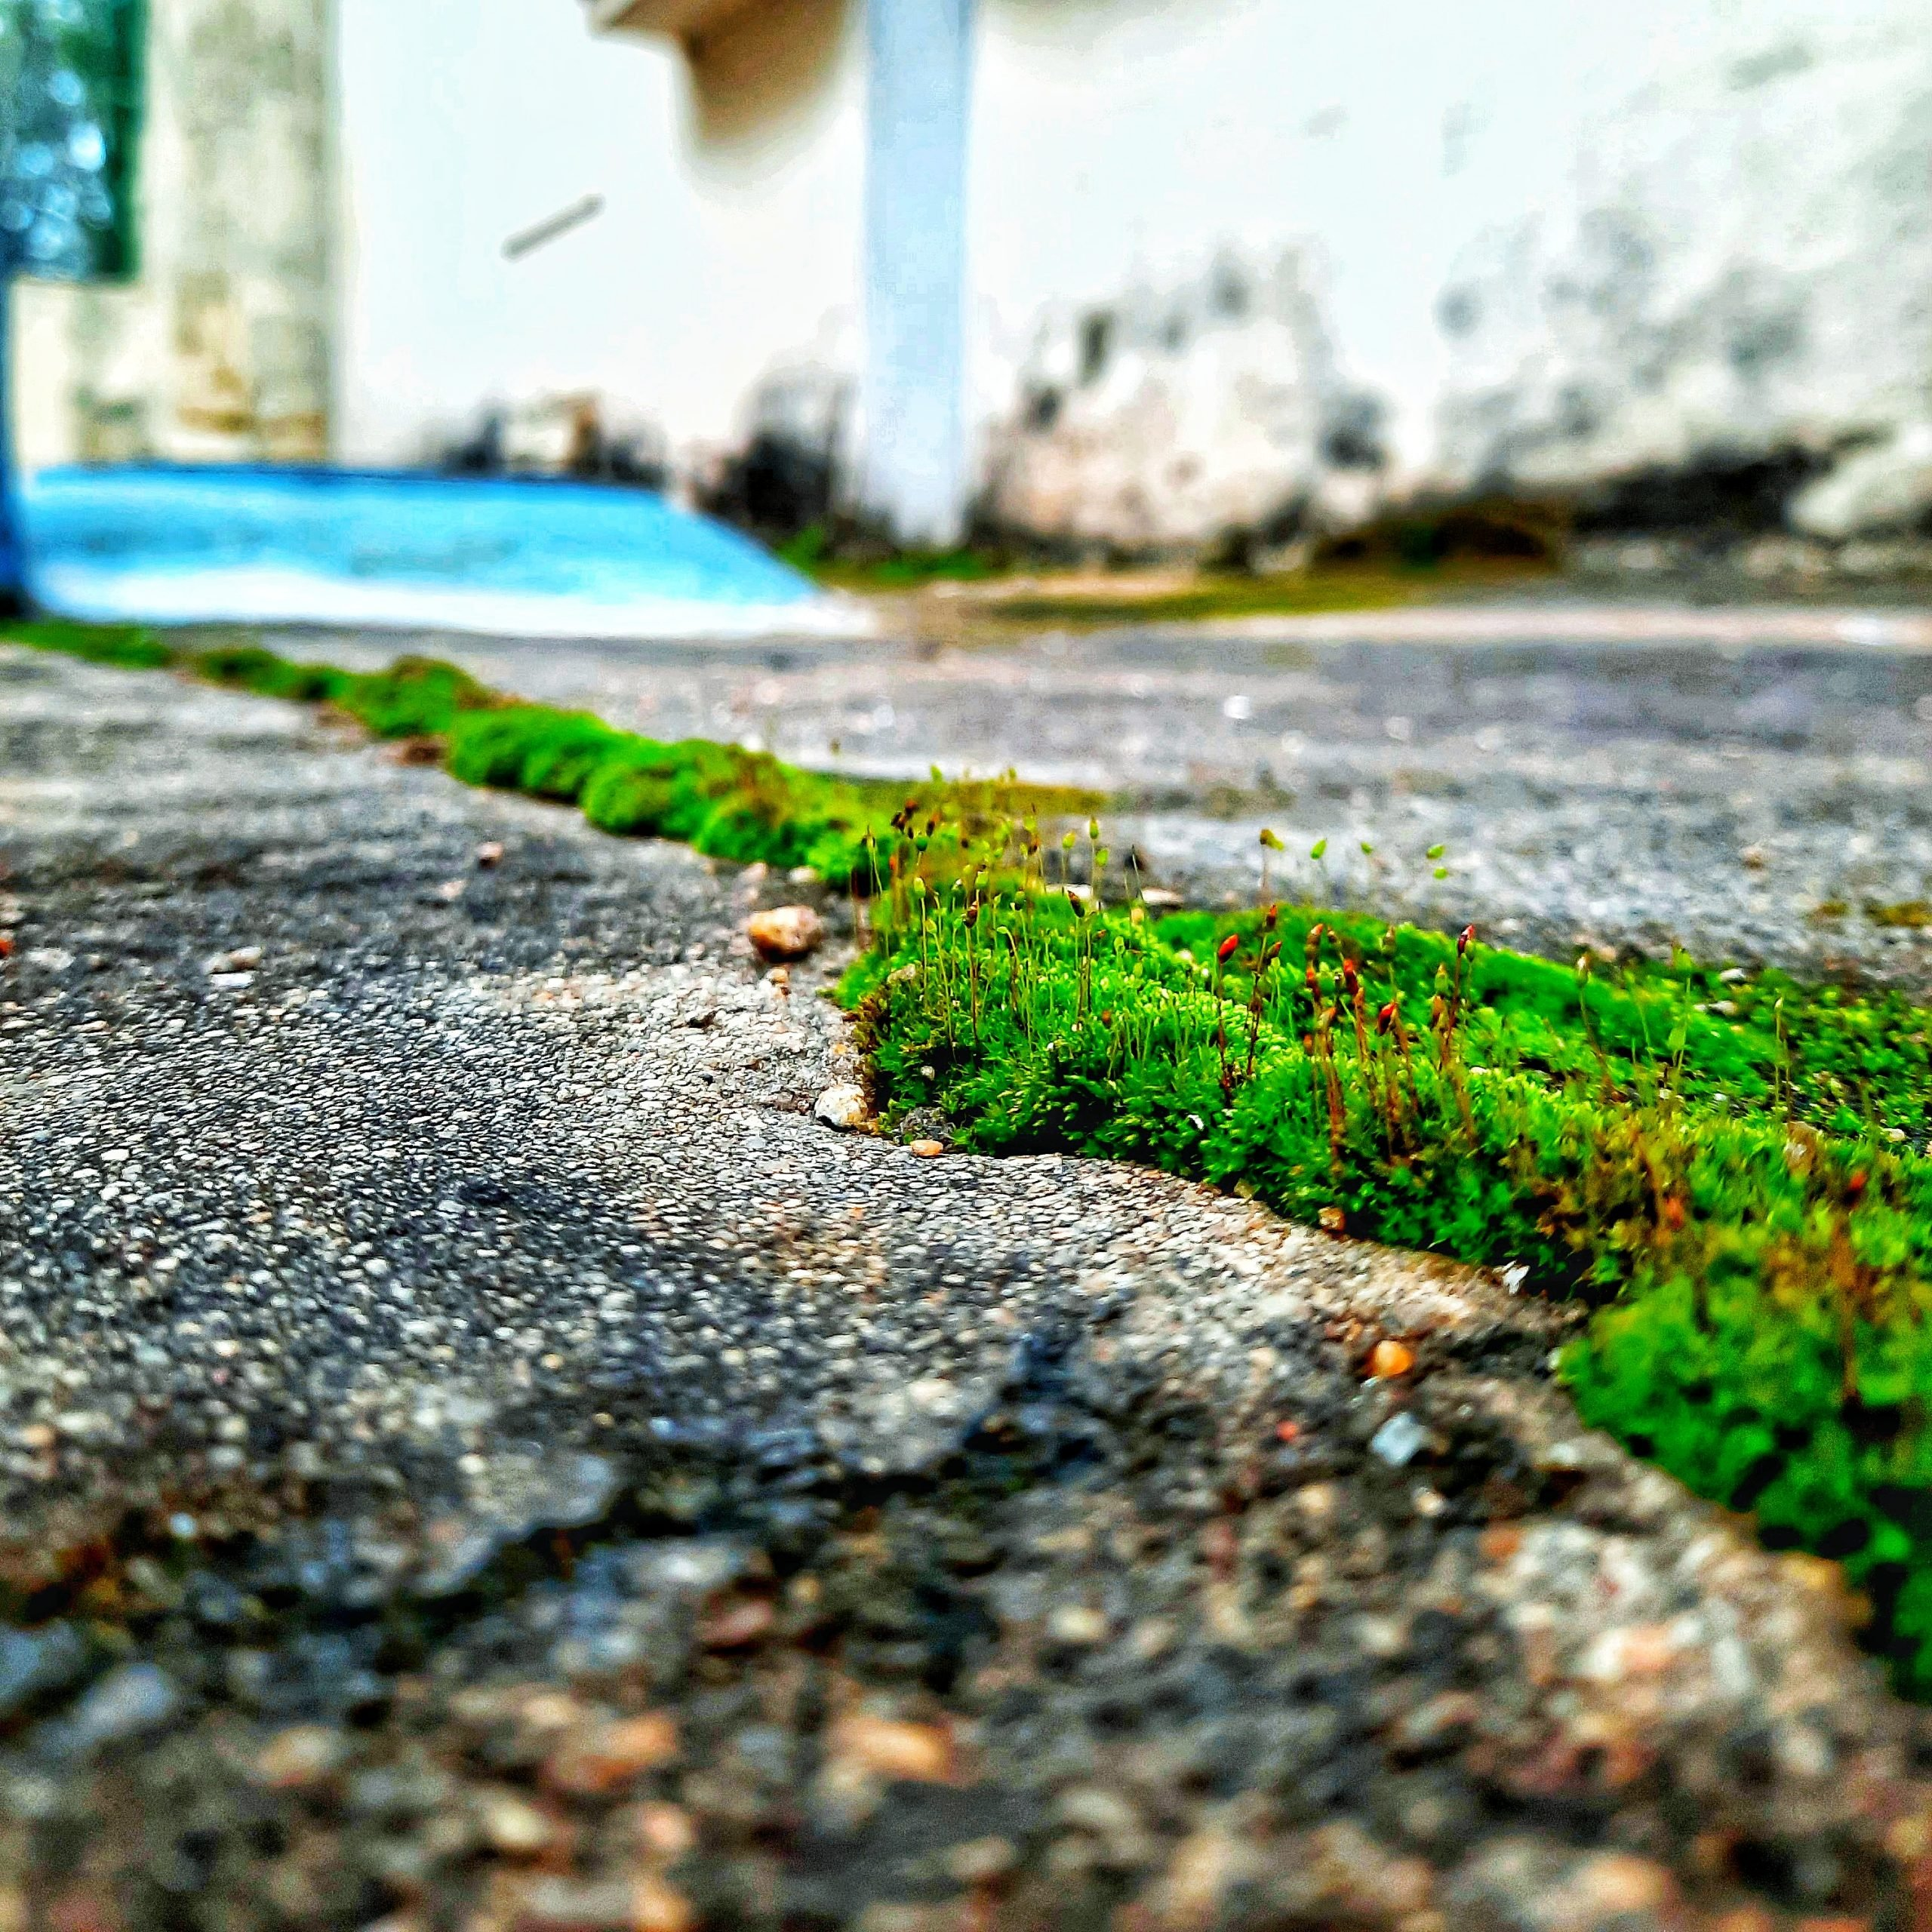 Moss on a solid surface